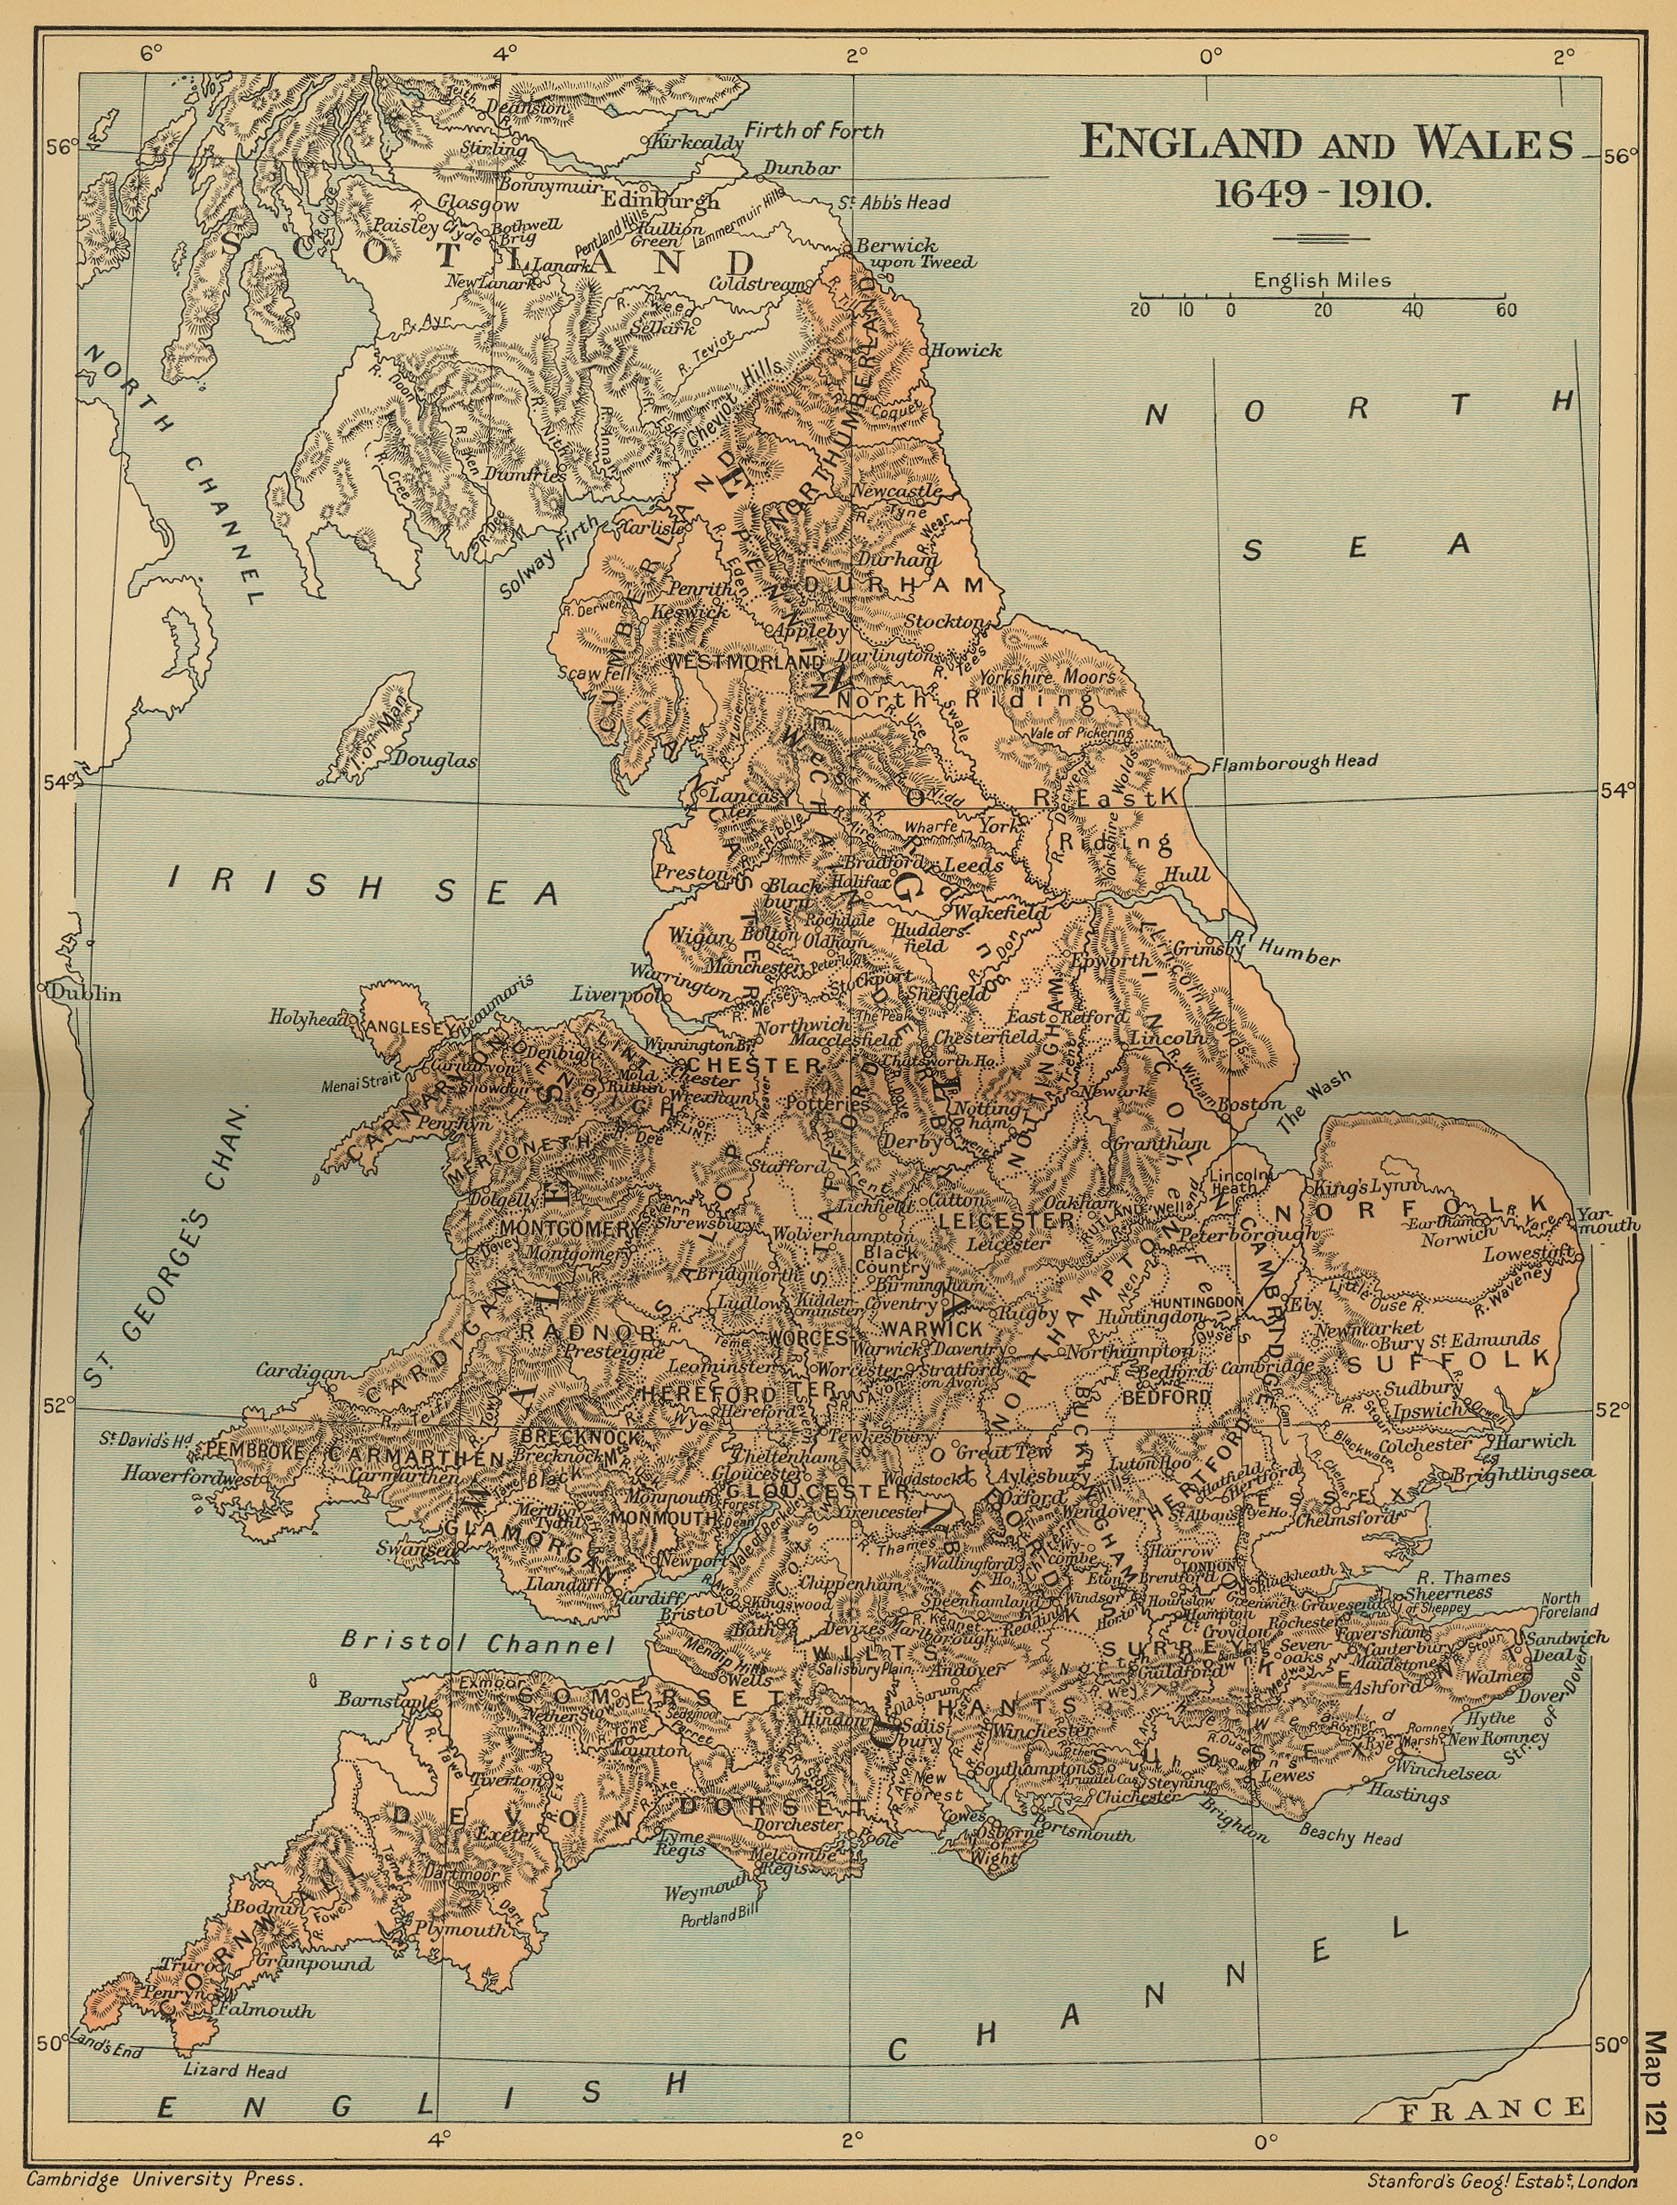 Map of England and Wales 1649  - 1910